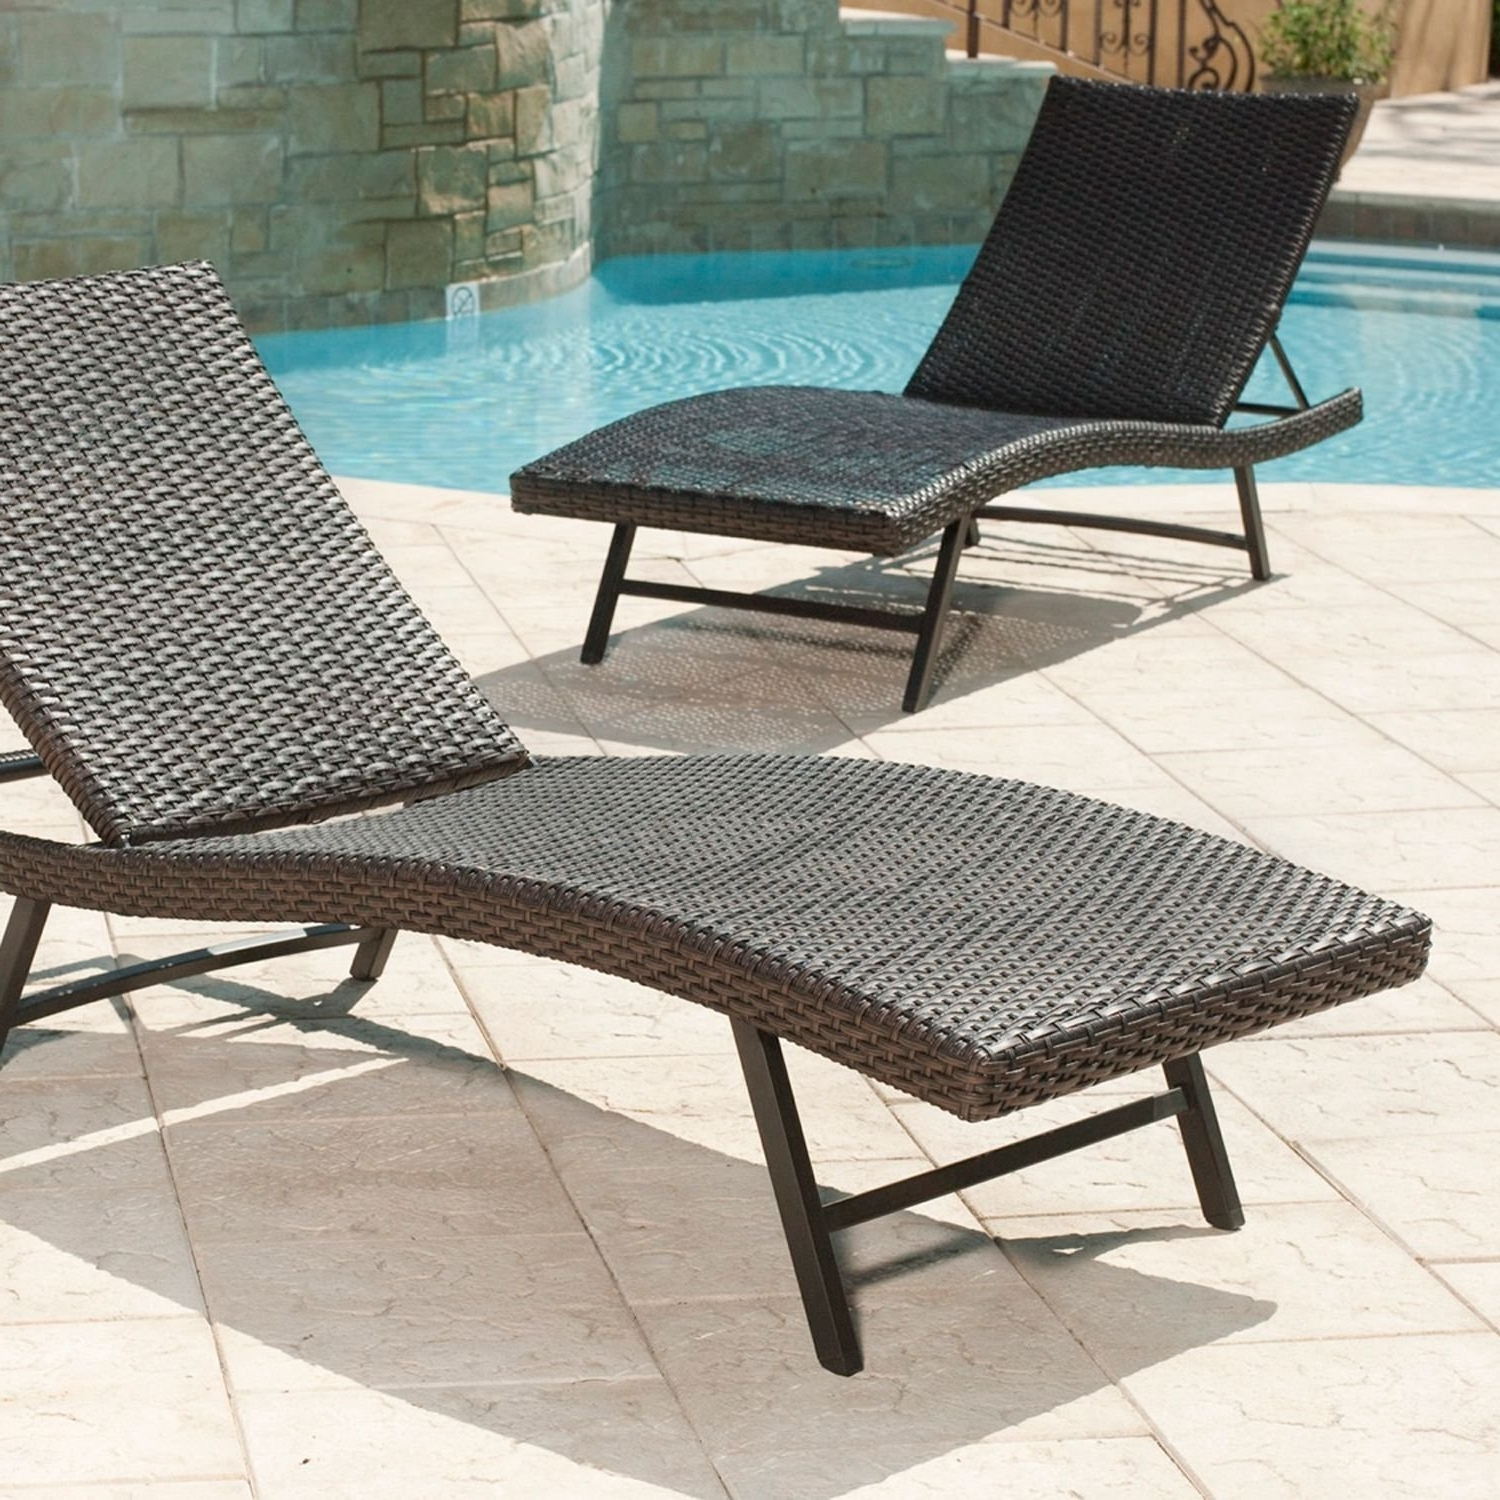 Well Liked Lounge Chair : Poolside Loungers Double Chaise Lounge Chair Buy Inside Chaise Lounge Chairs For Poolside (View 15 of 15)